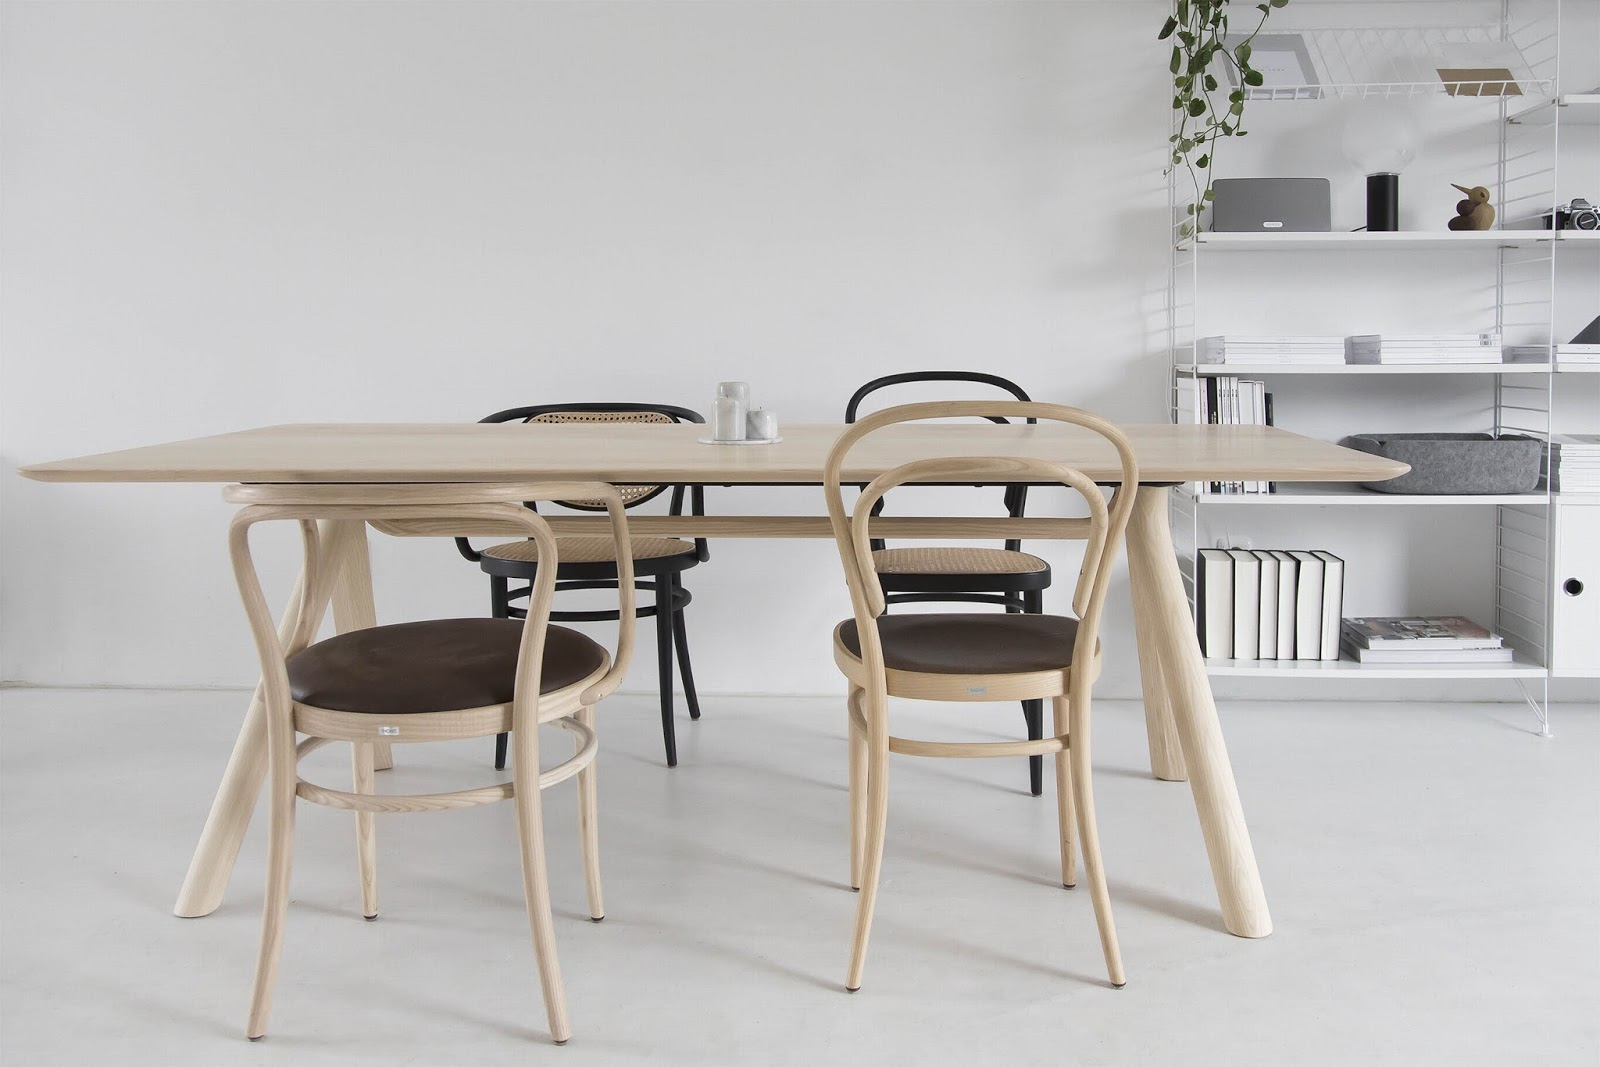 Uberlegen I Have Said It Before But I Really Love It If Two (or Even More) Inspiring  Brands Or Creators Work Together... German Furniture Company Thonet Has  Presented ...